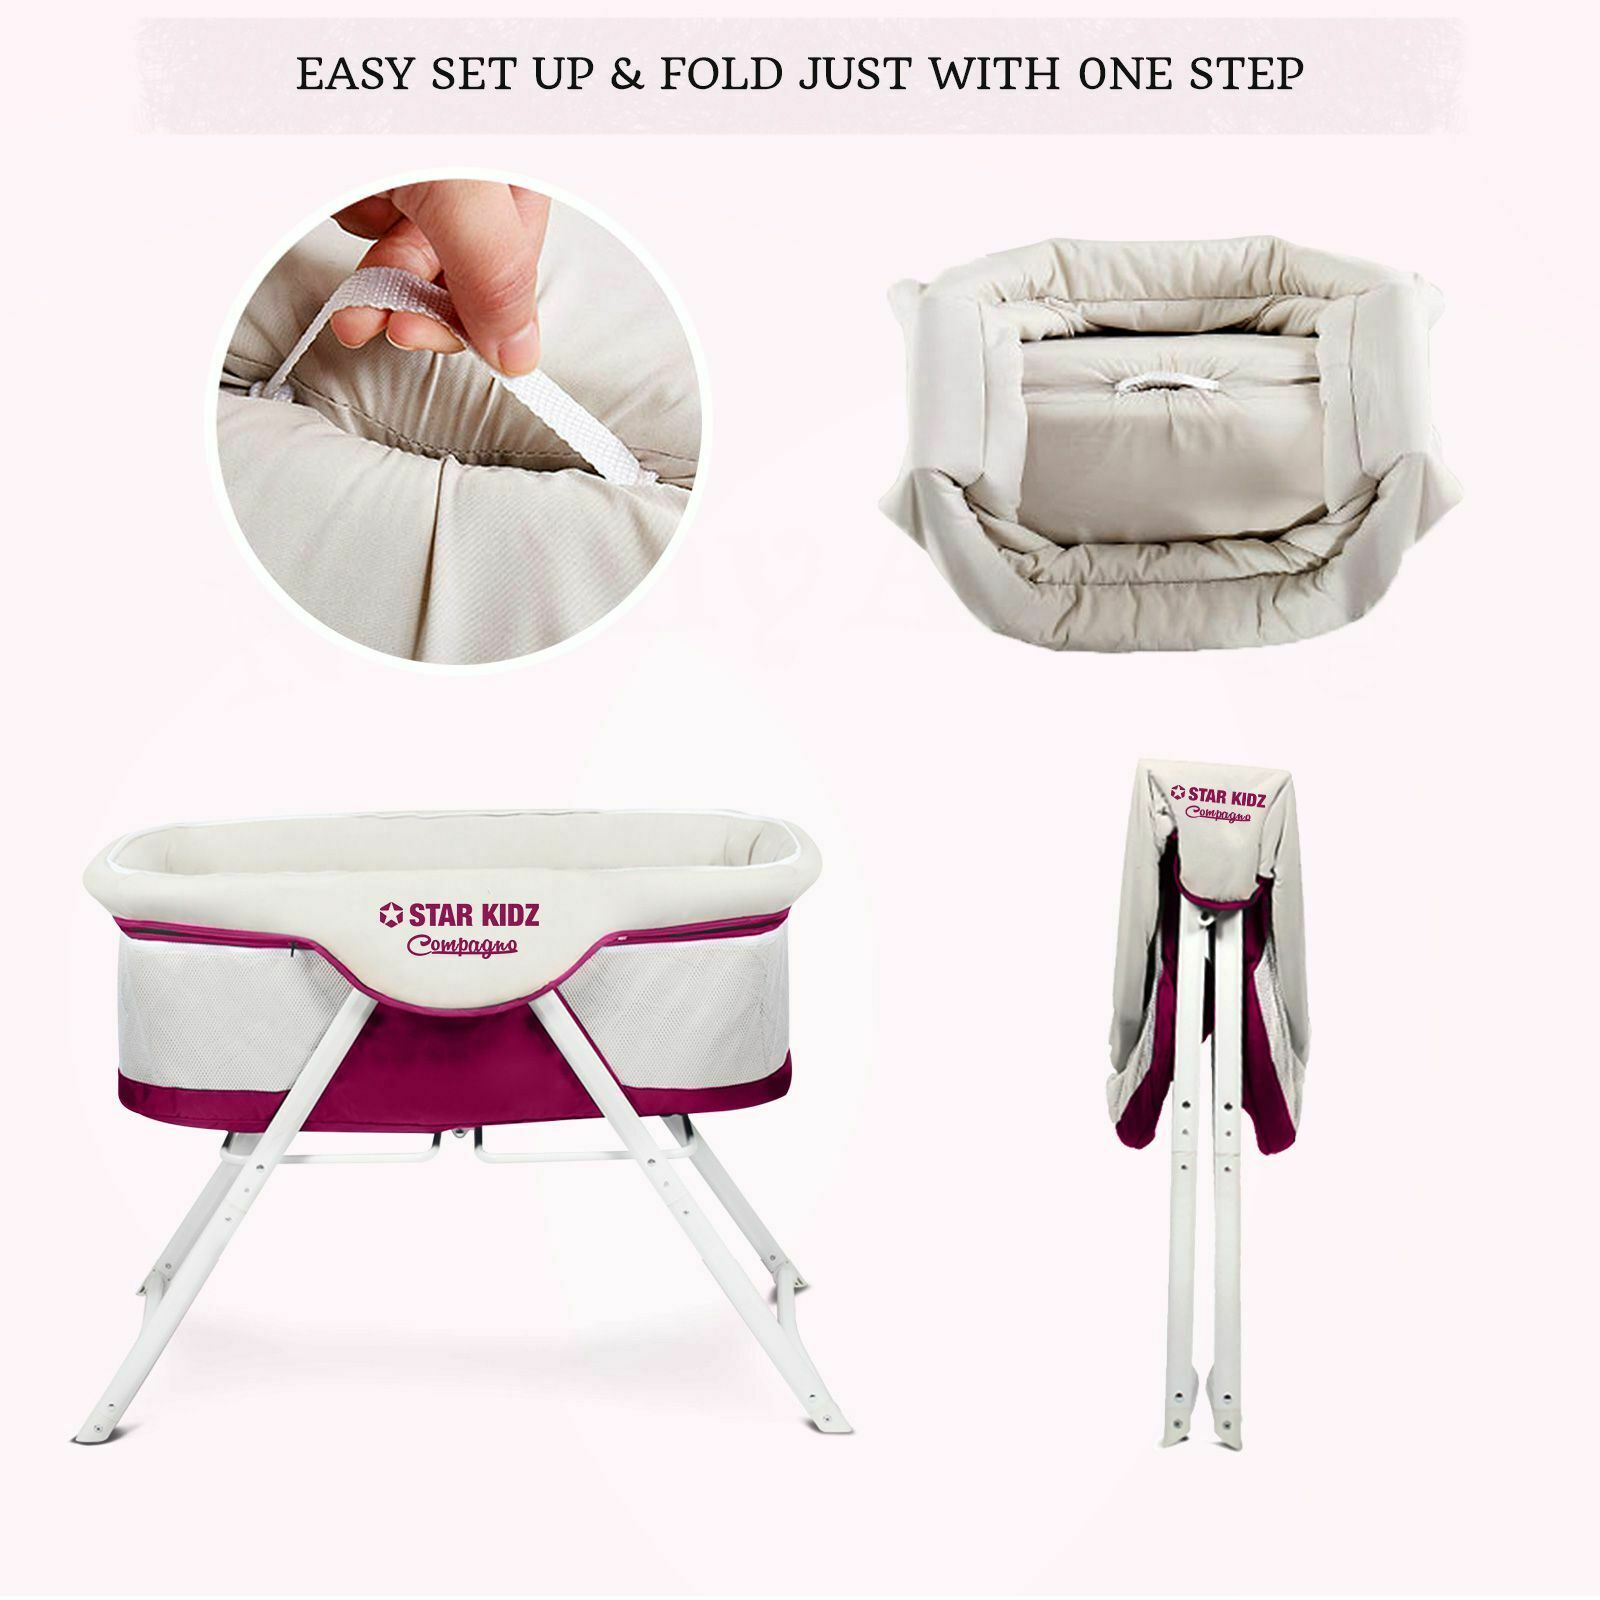 Star Kidz Compagno Baby Bassinet